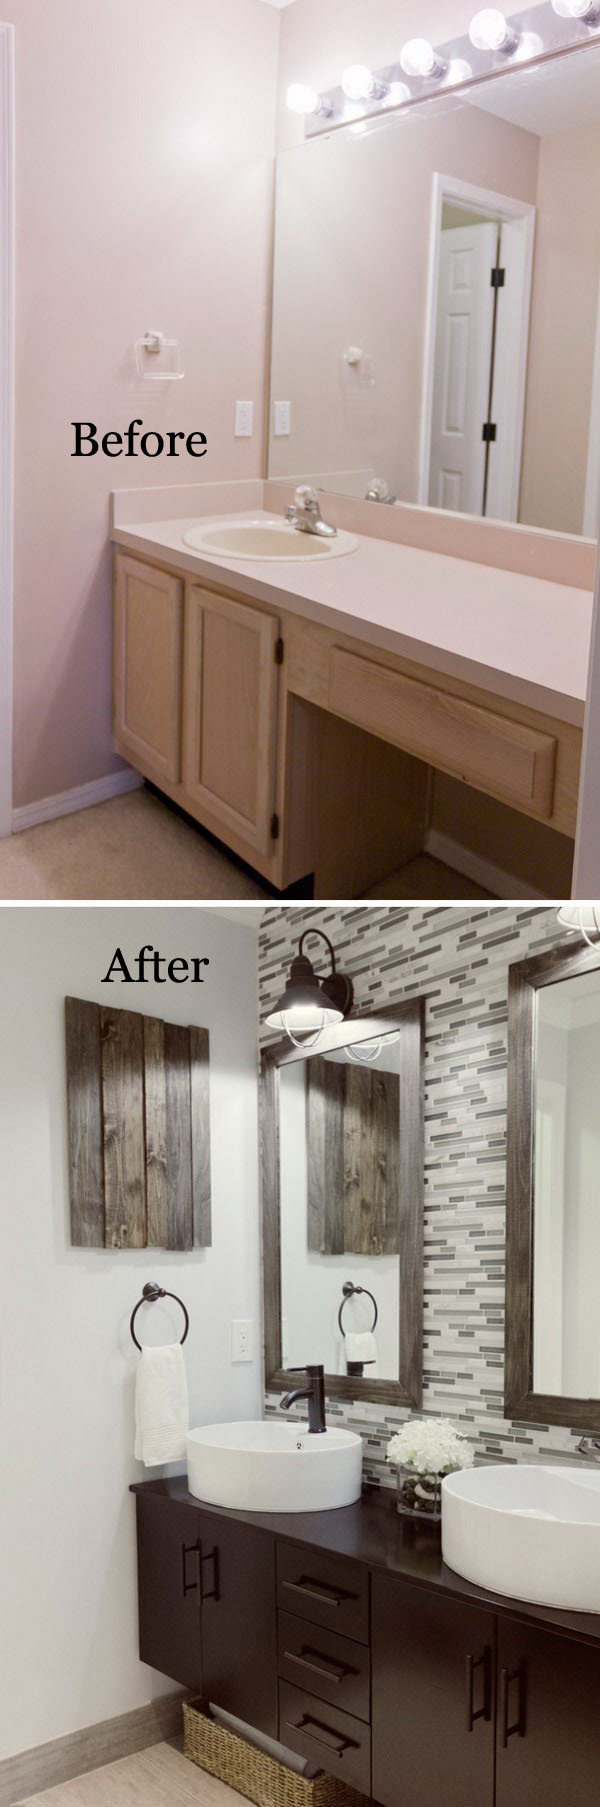 Before and after 20 awesome bathroom makeovers hative for Bathroom renovation images